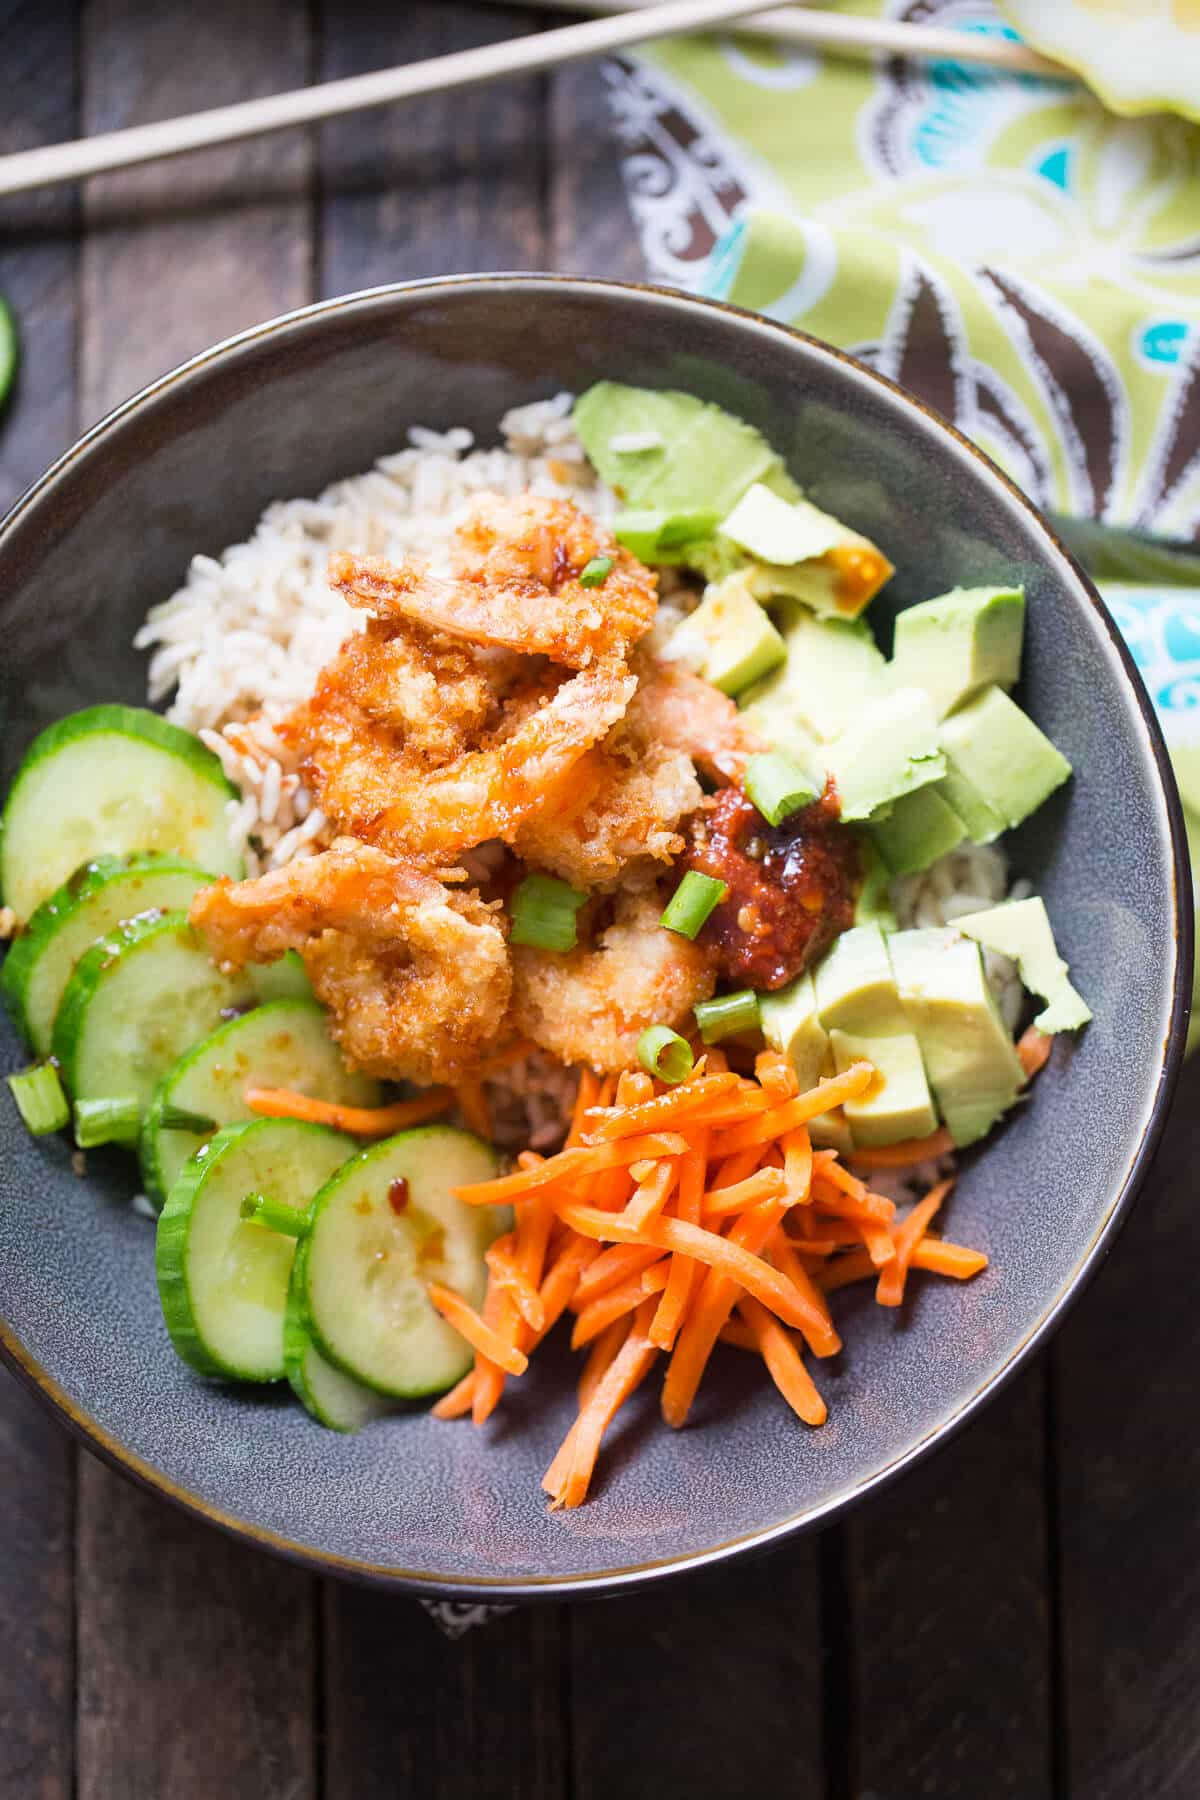 Breaded shrimp give texture and crunch to this simple sushi bowl!